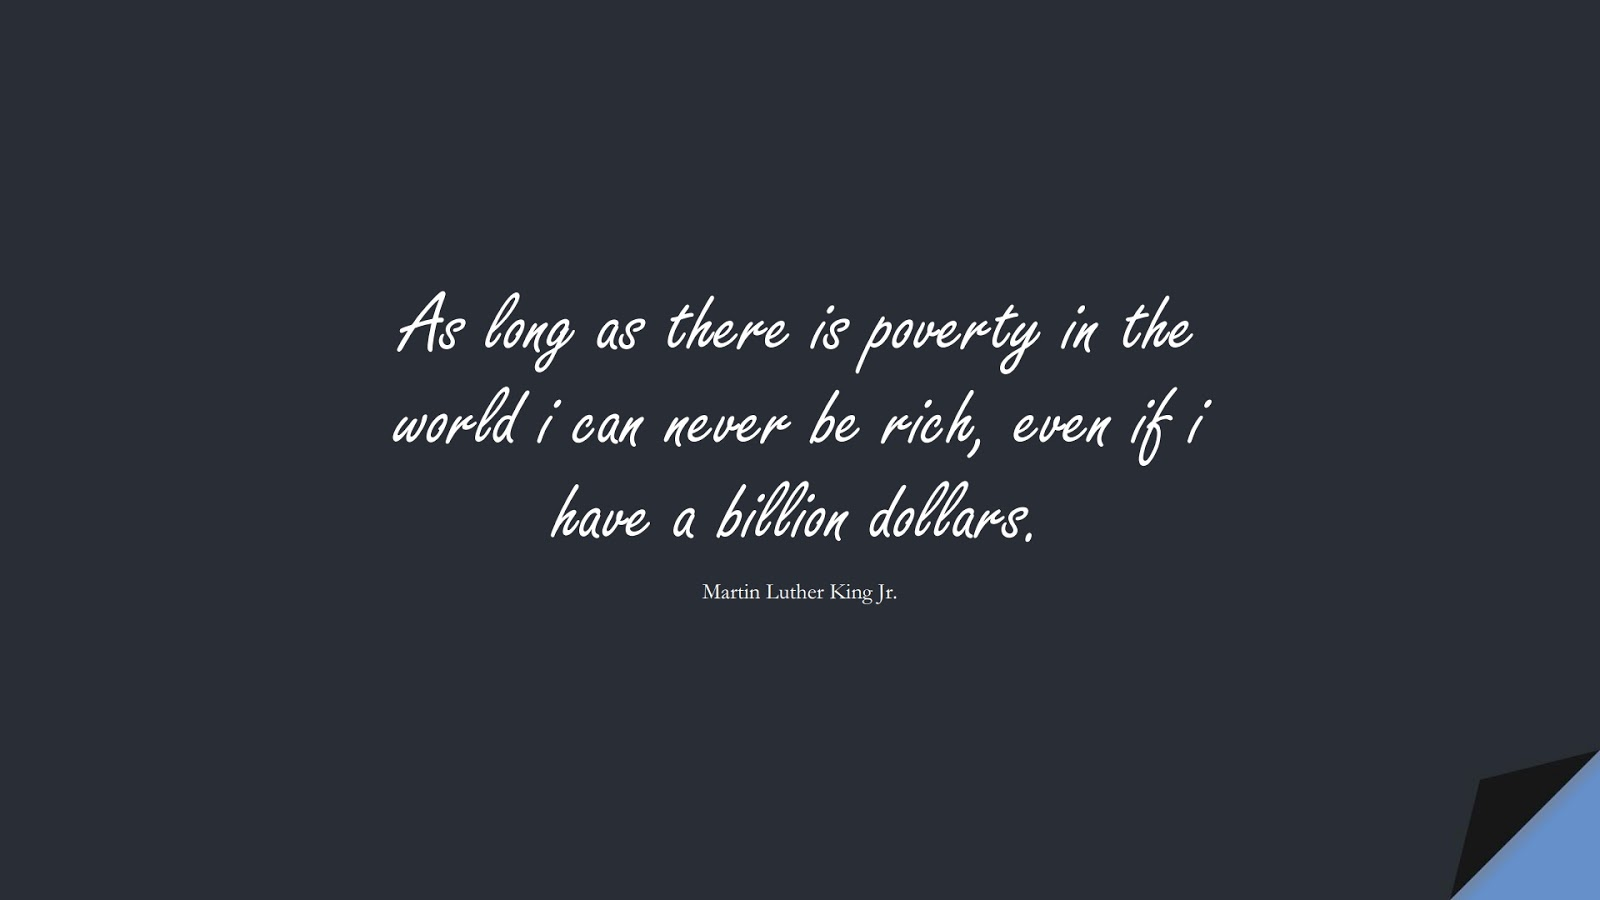 As long as there is poverty in the world i can never be rich, even if i have a billion dollars. (Martin Luther King Jr.);  #MartinLutherKingJrQuotes